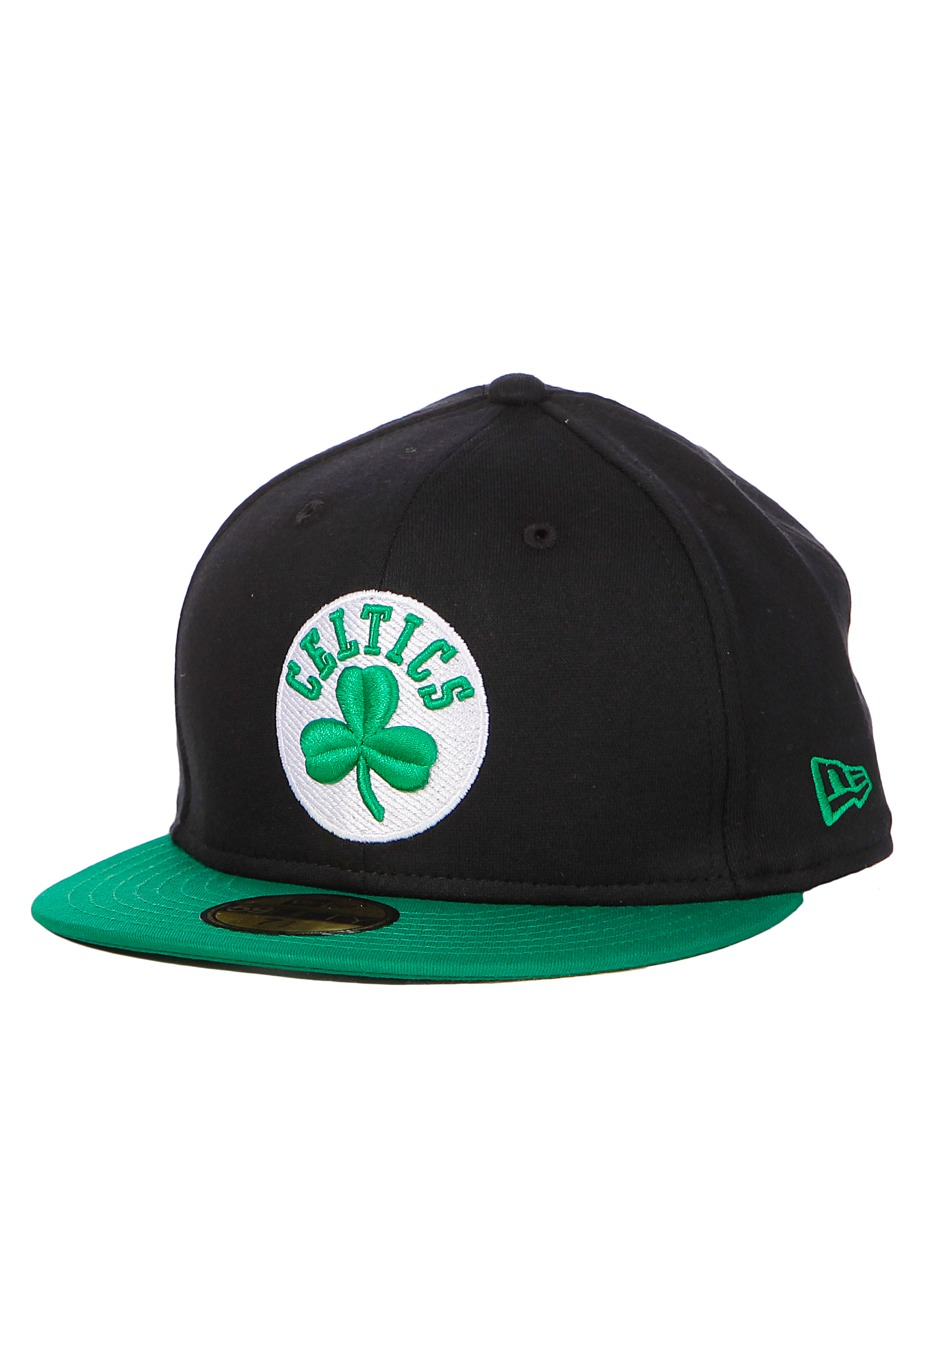 New Era - Oversized NBA Boston Celtics - Cap - Streetwear Shop -  Impericon.com UK 5719e55bdfb